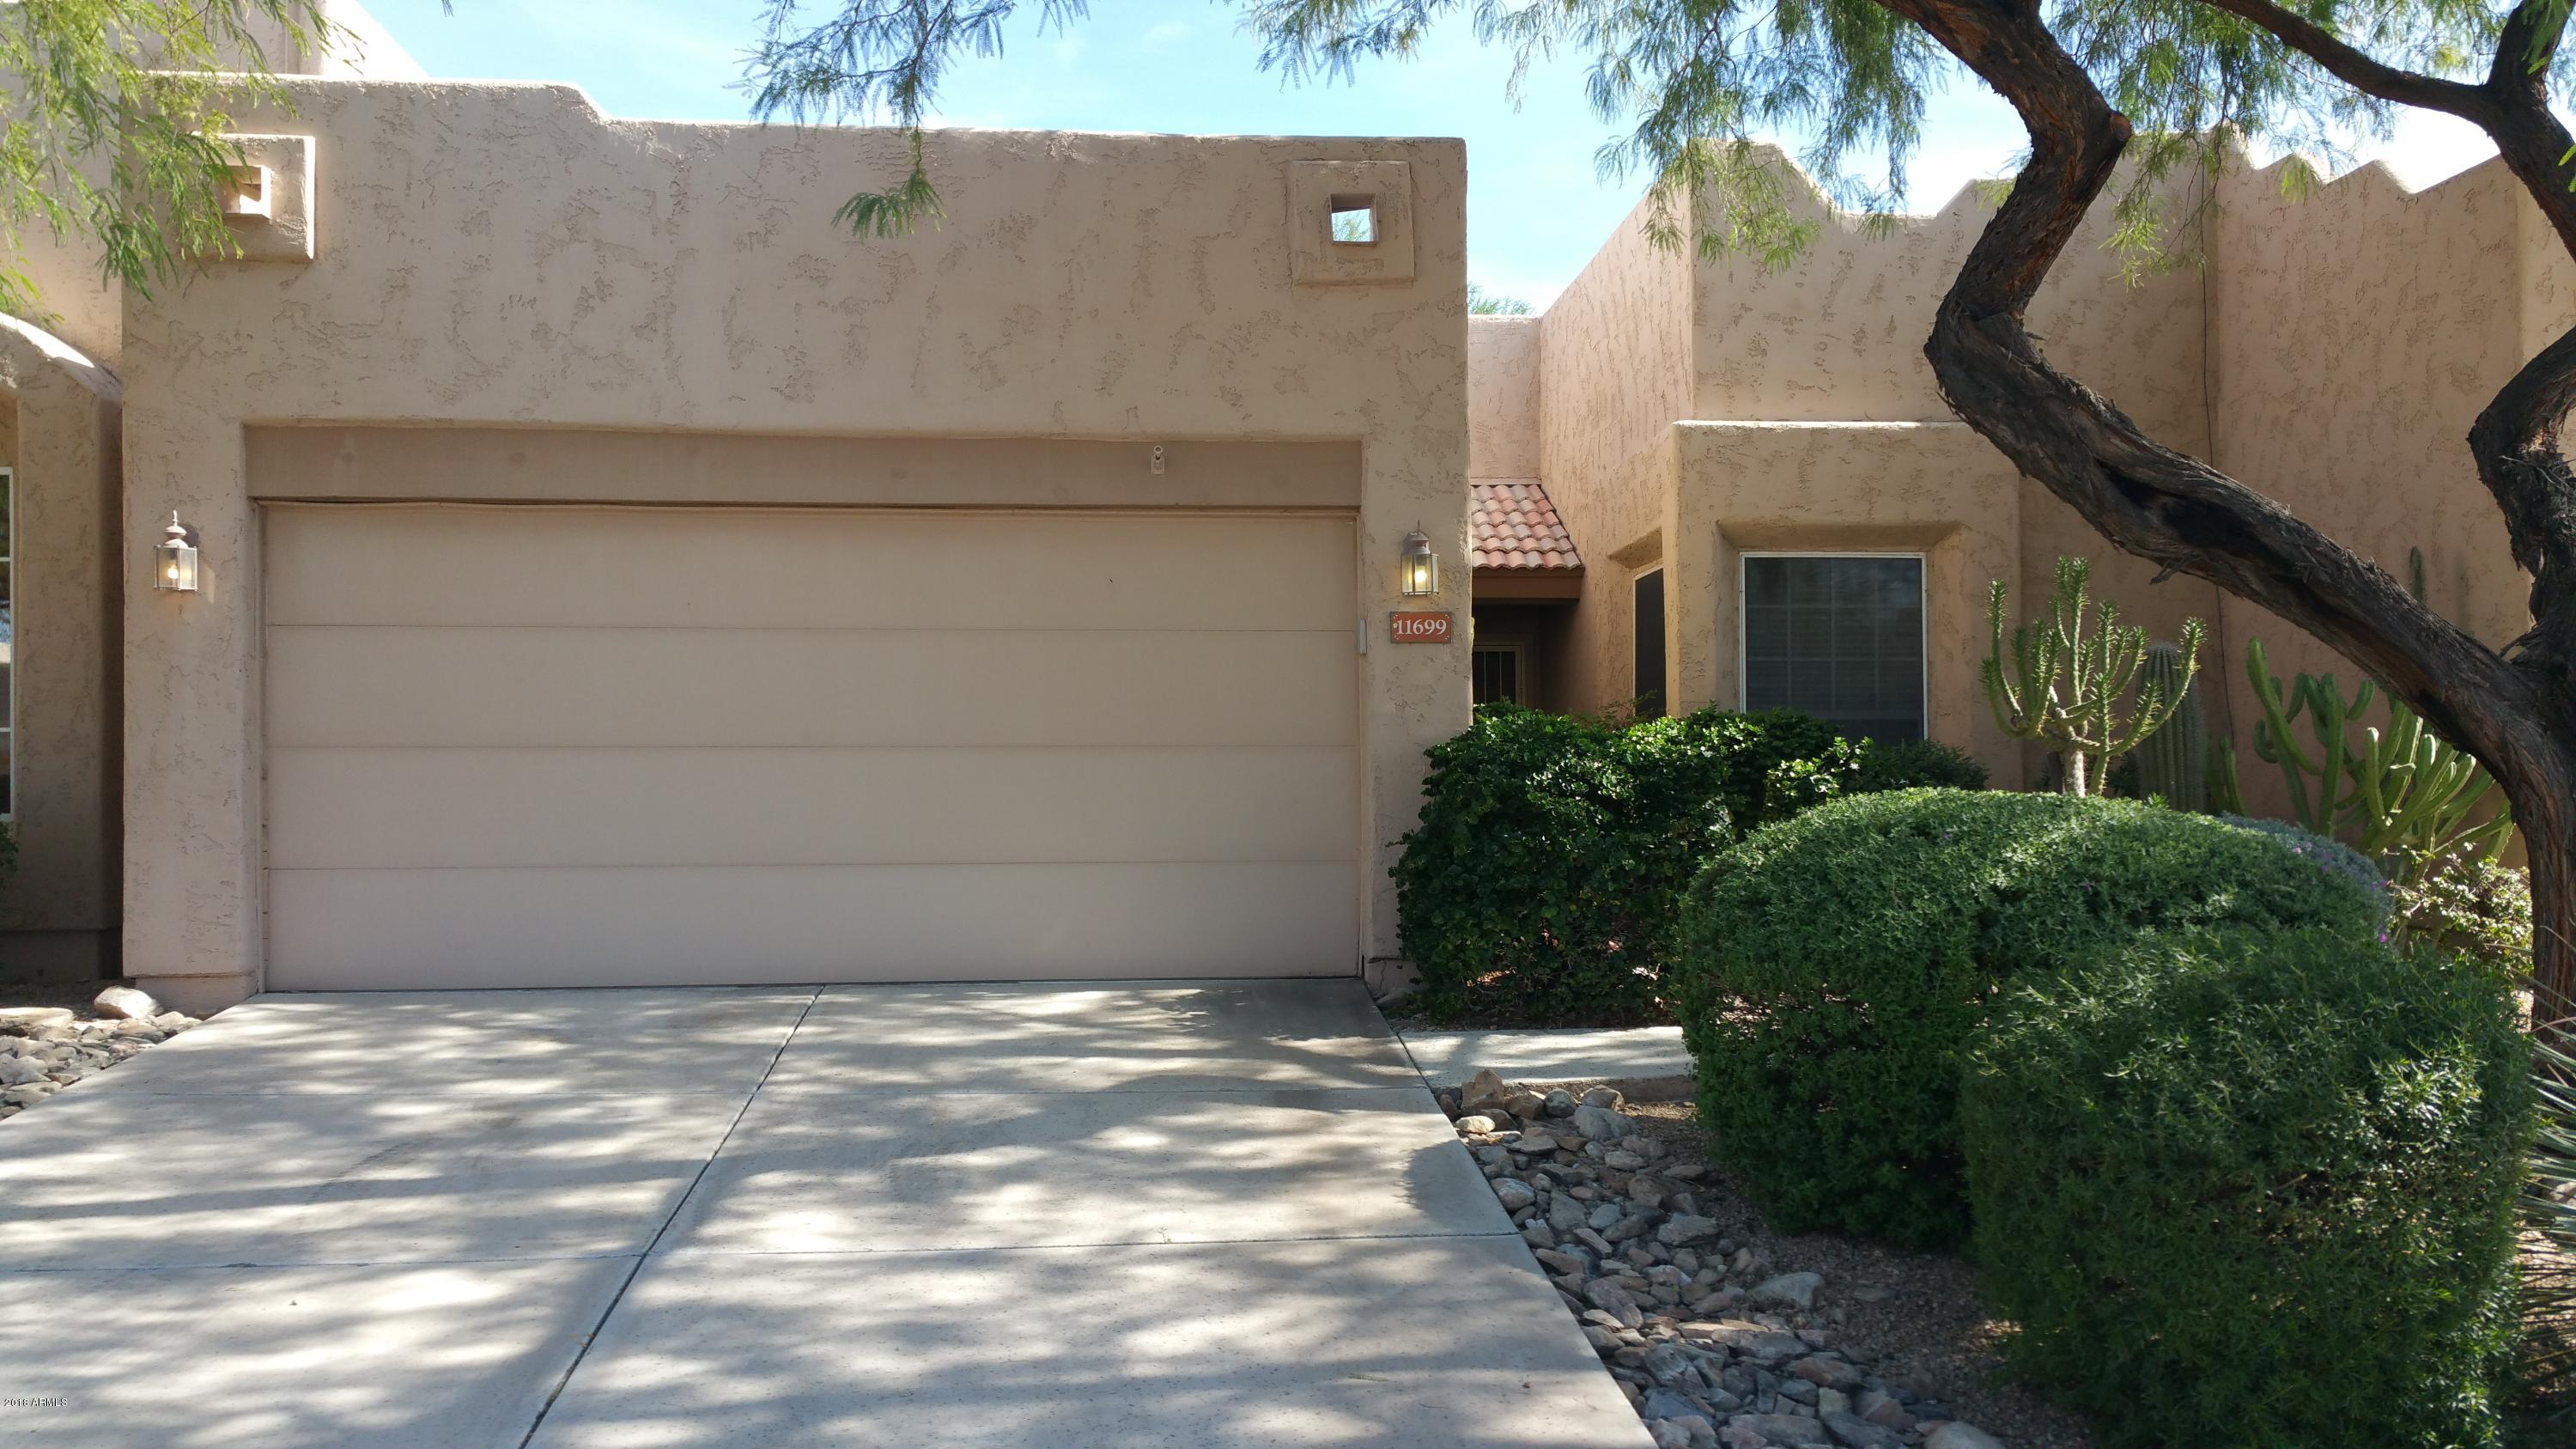 Photo of 11699 N 114th Place, Scottsdale, AZ 85259